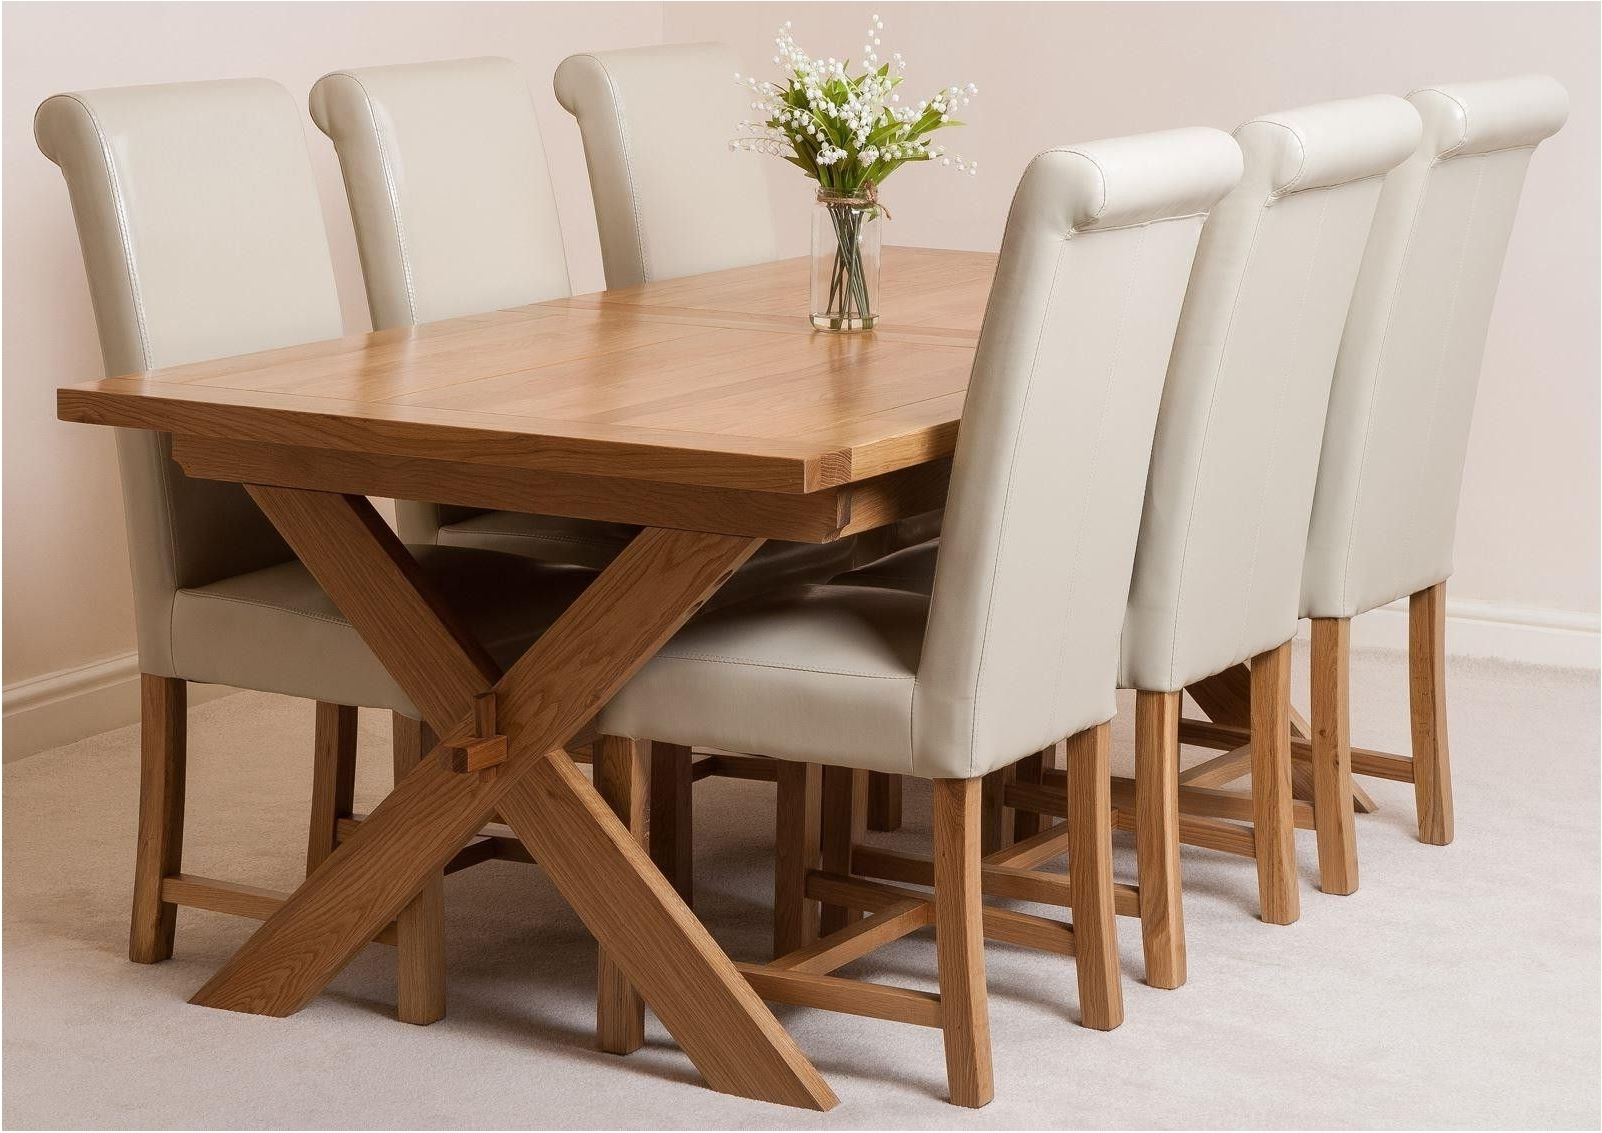 Breathtaking Vermont Extending Oak Dining Table With 6 Black Lola With Regard To Well Known Extendable Oak Dining Tables And Chairs (View 3 of 25)